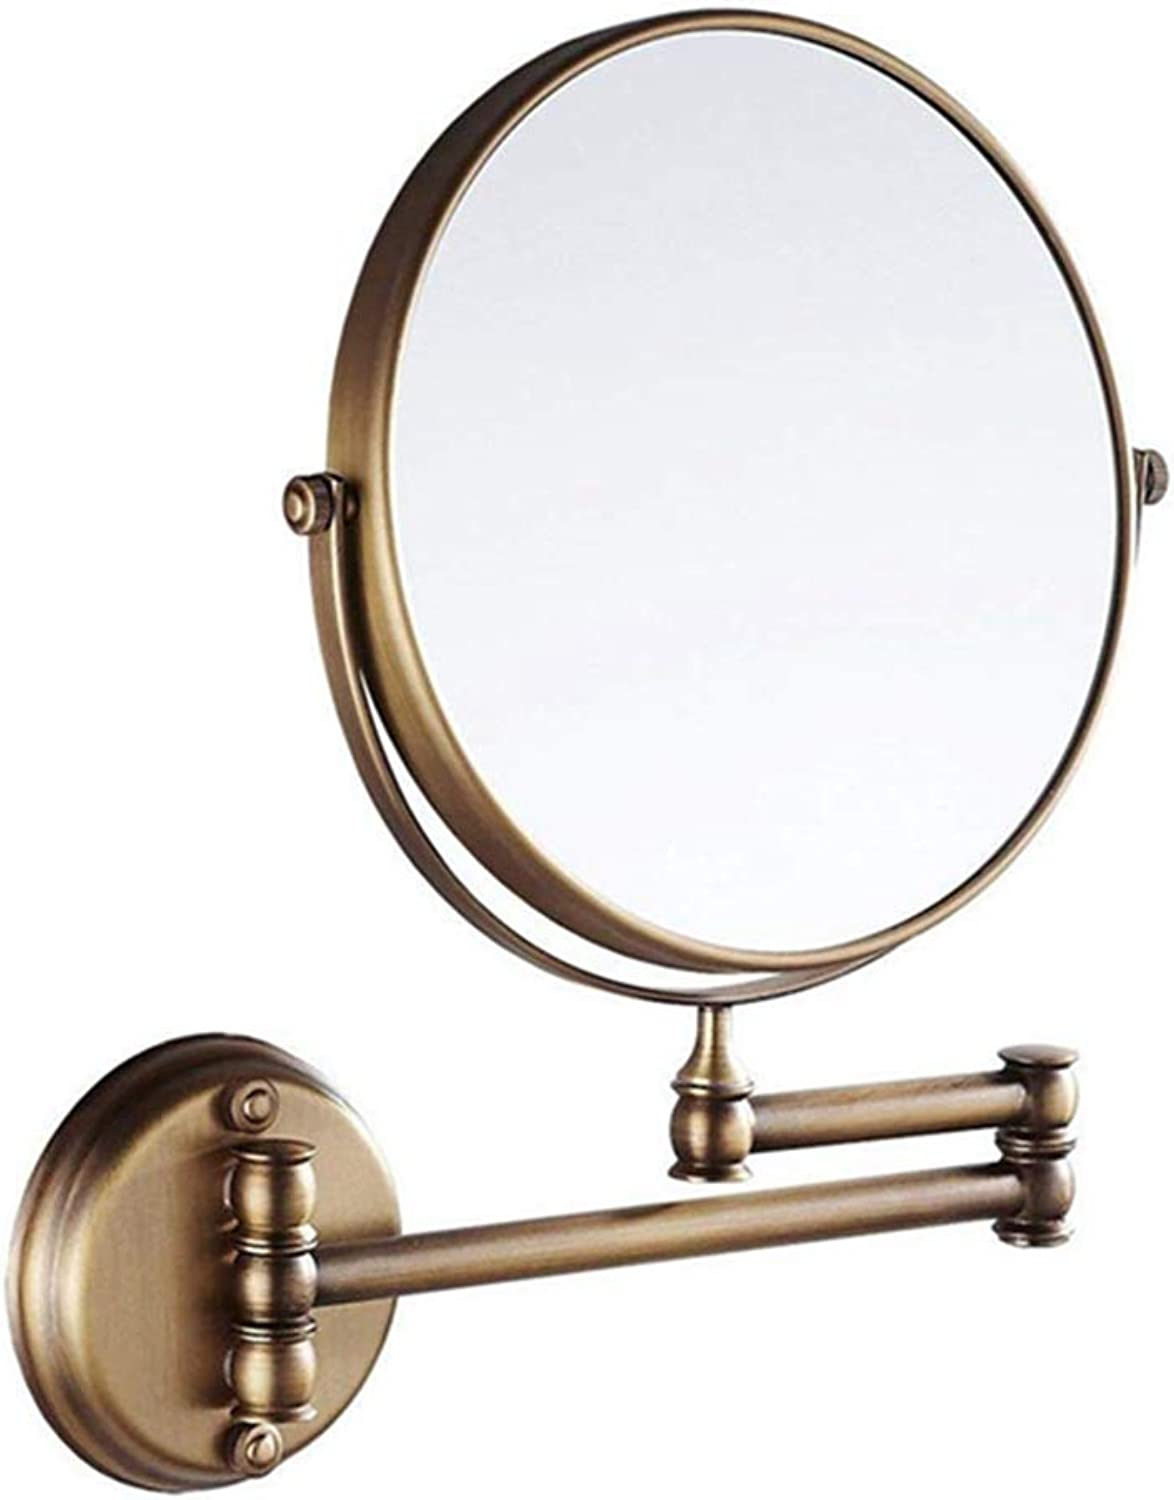 LUDSUY 8 Inch Wall Mount Two Sided 360 Degree Swivel Mirror Antique Brass,Personal Make Up Round Mirrors Classic redatable